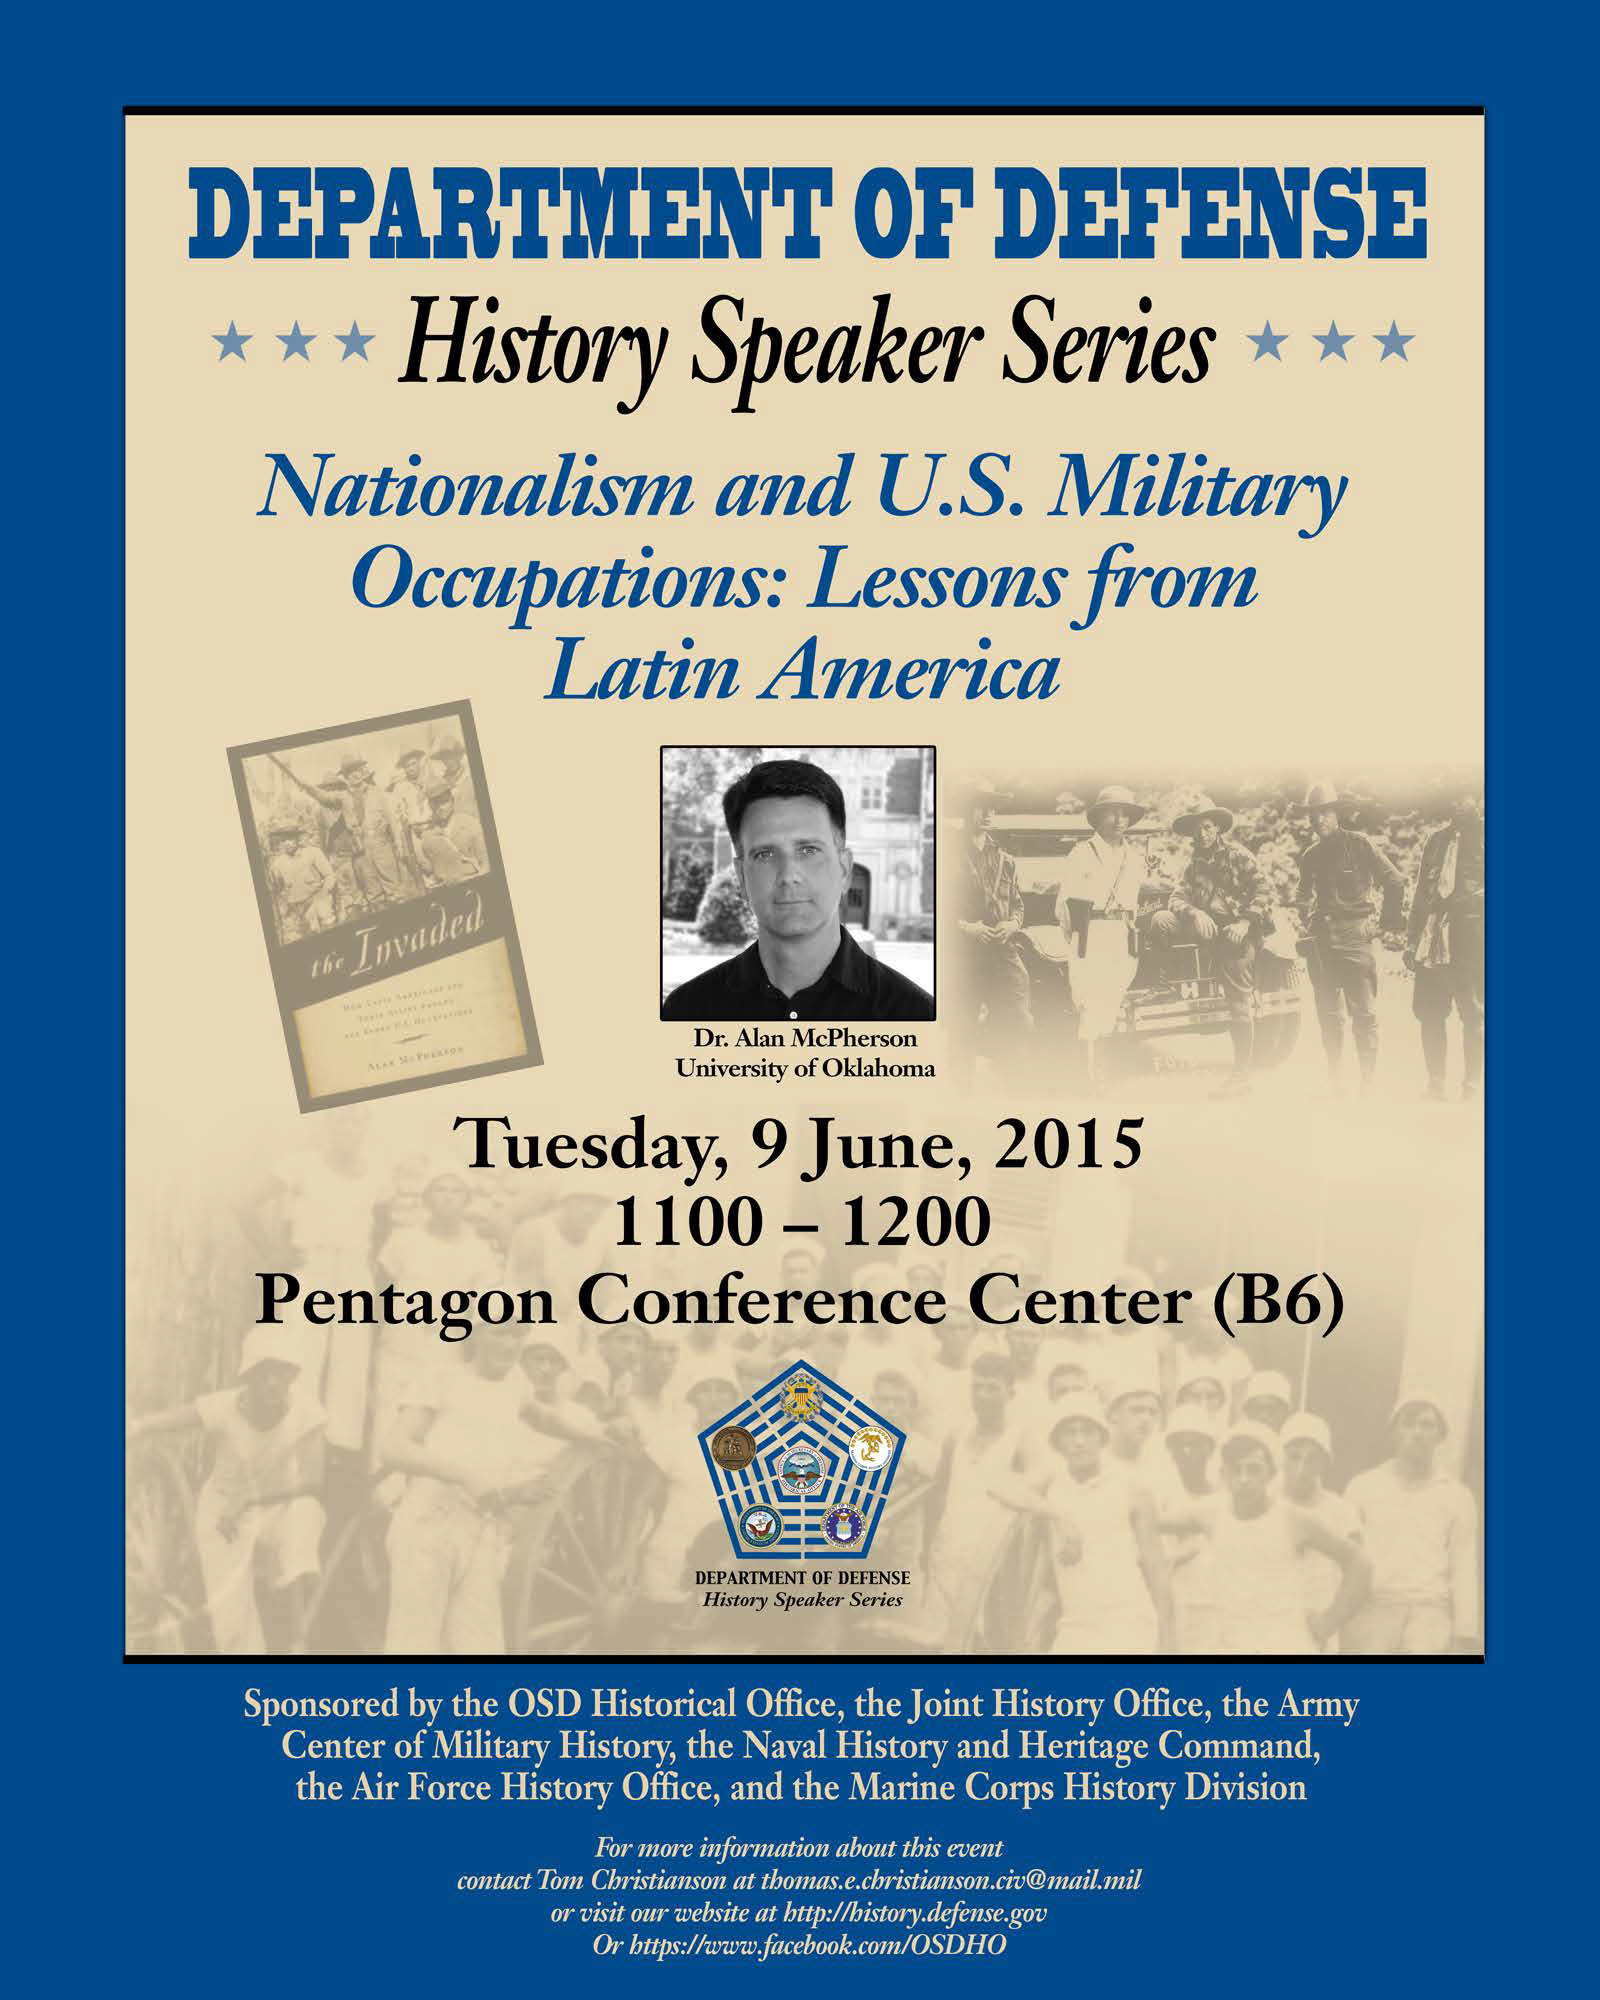 Tom kennedy us army claims service - June 9 2015 On Tuesday 9 June 2015 At 1100 In Room B6 Of The Pentagon Conference Center Alan Mcpherson Will Be Speaking About U S Military Operations